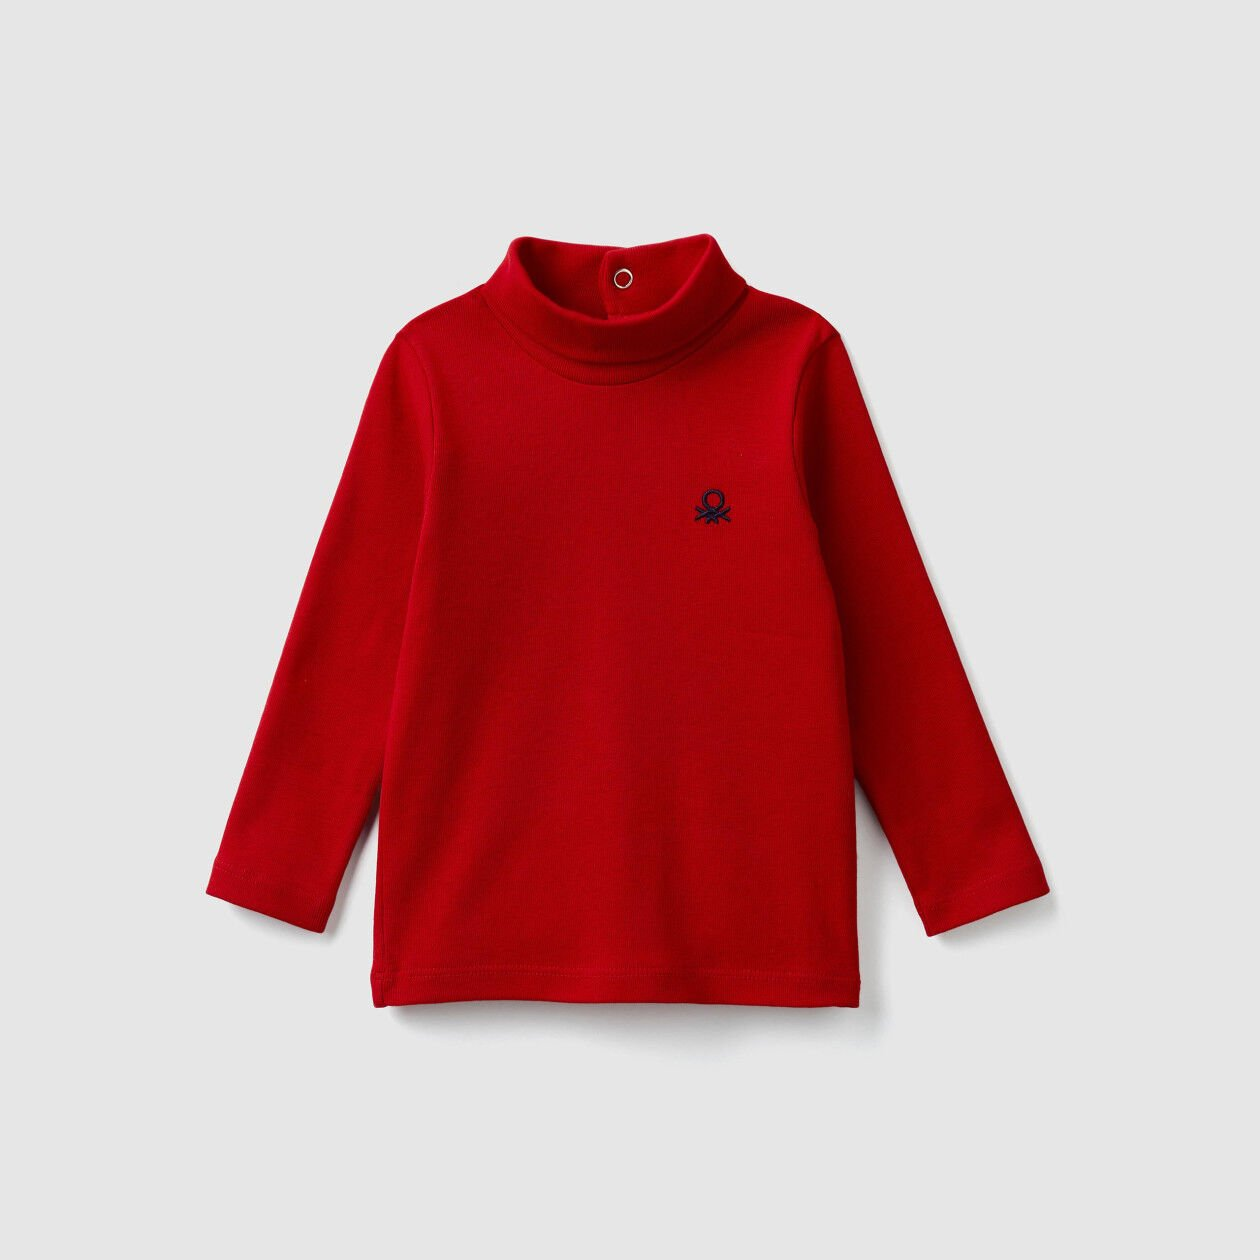 Turtleneck t-shirt in organic cotton